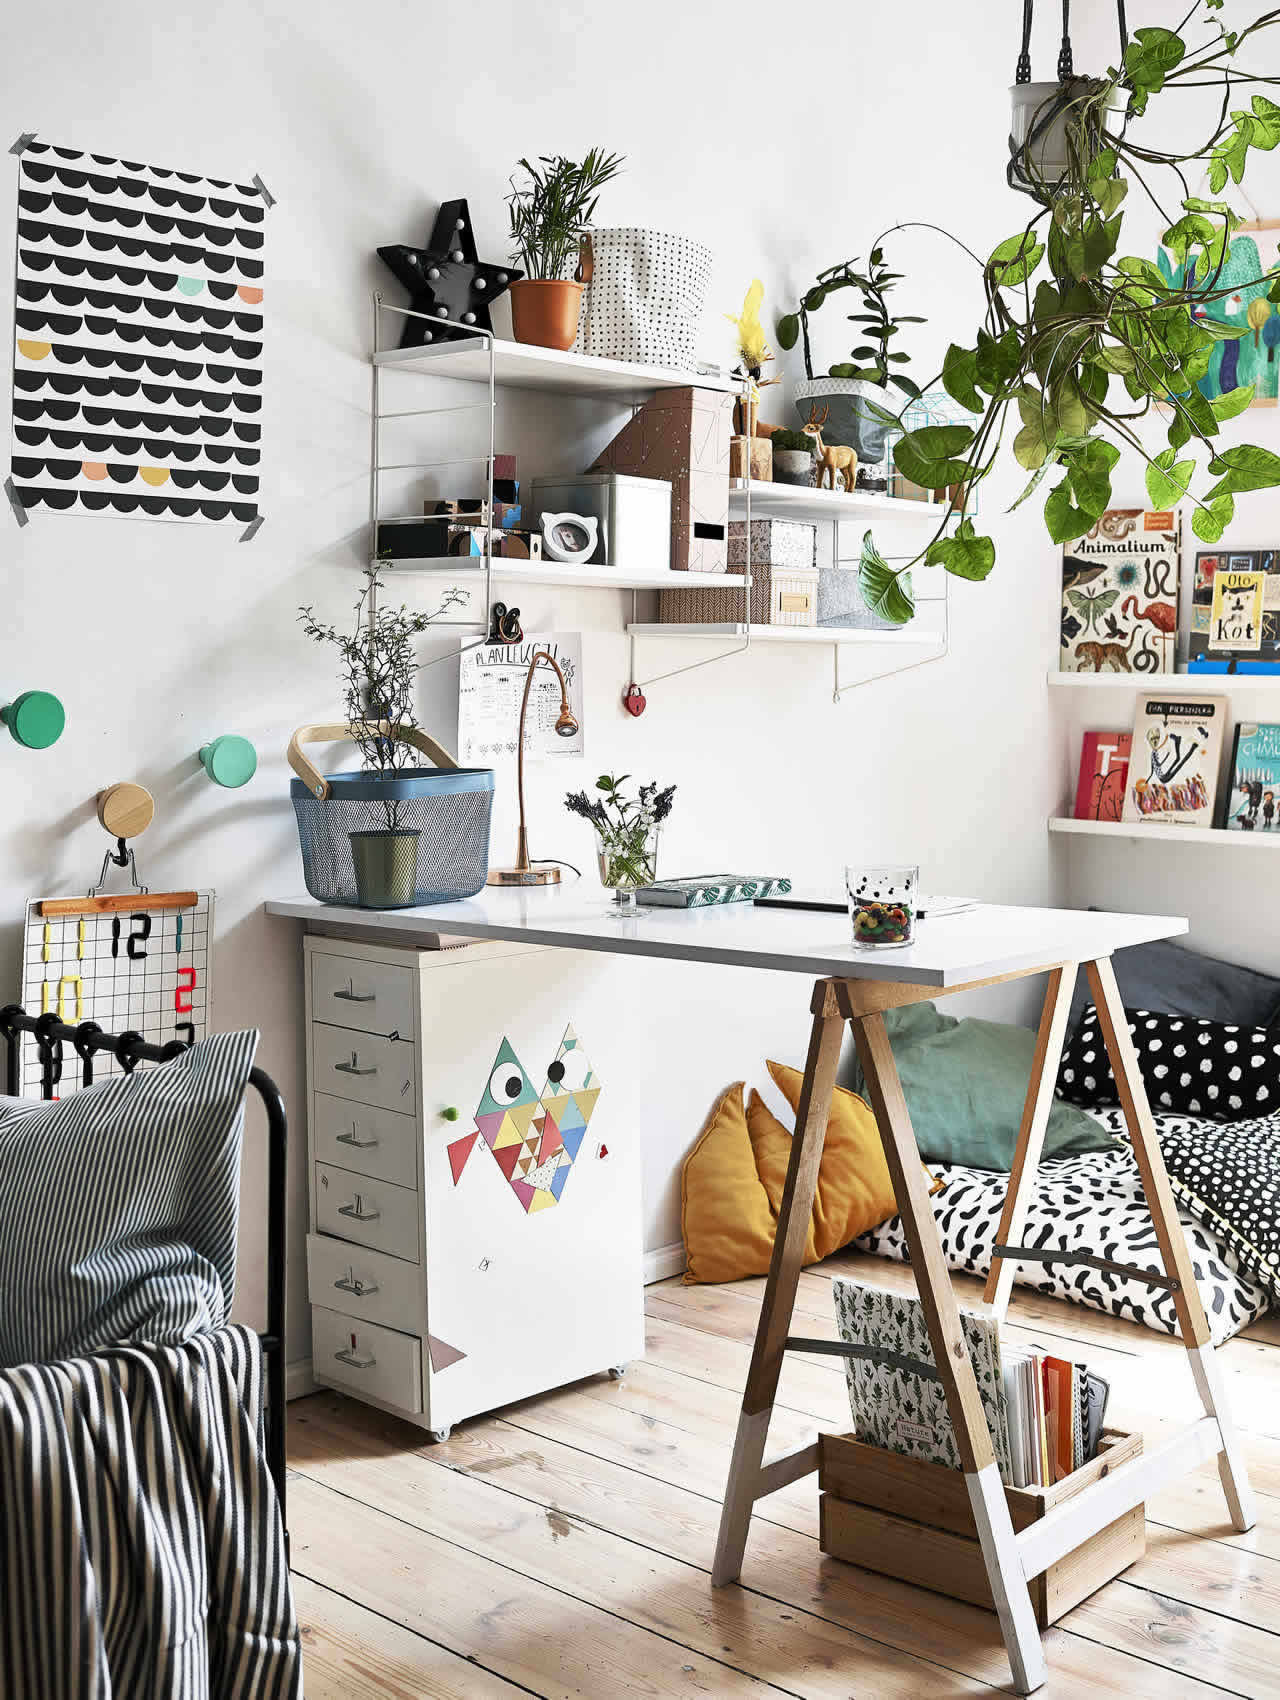 IKEA Ideas - Create a dream kid's room